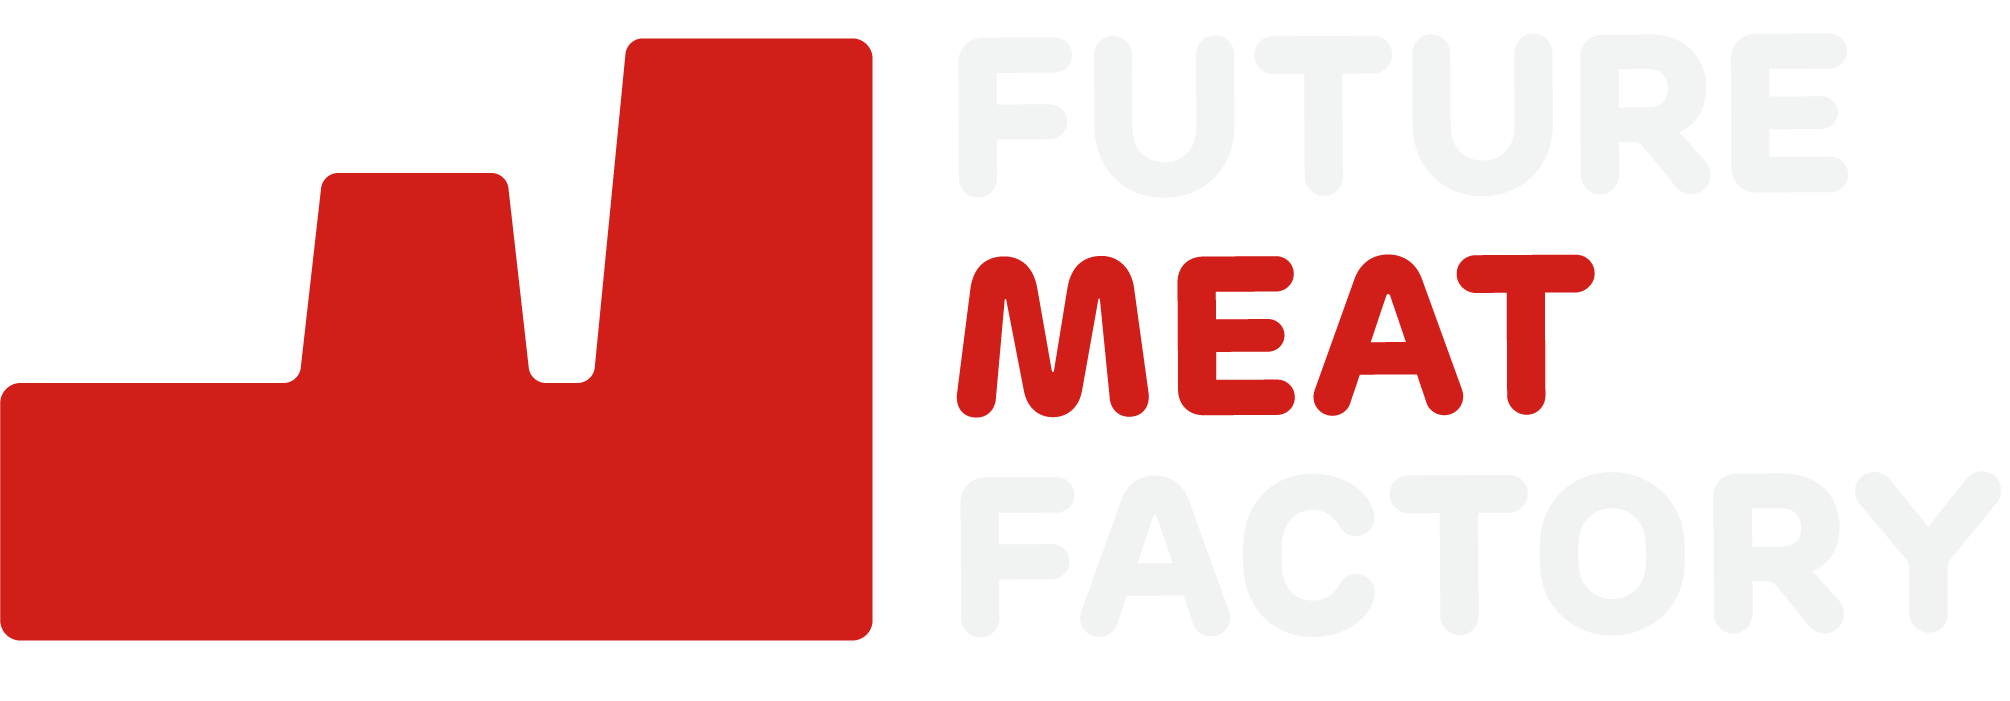 Future Meat Factory